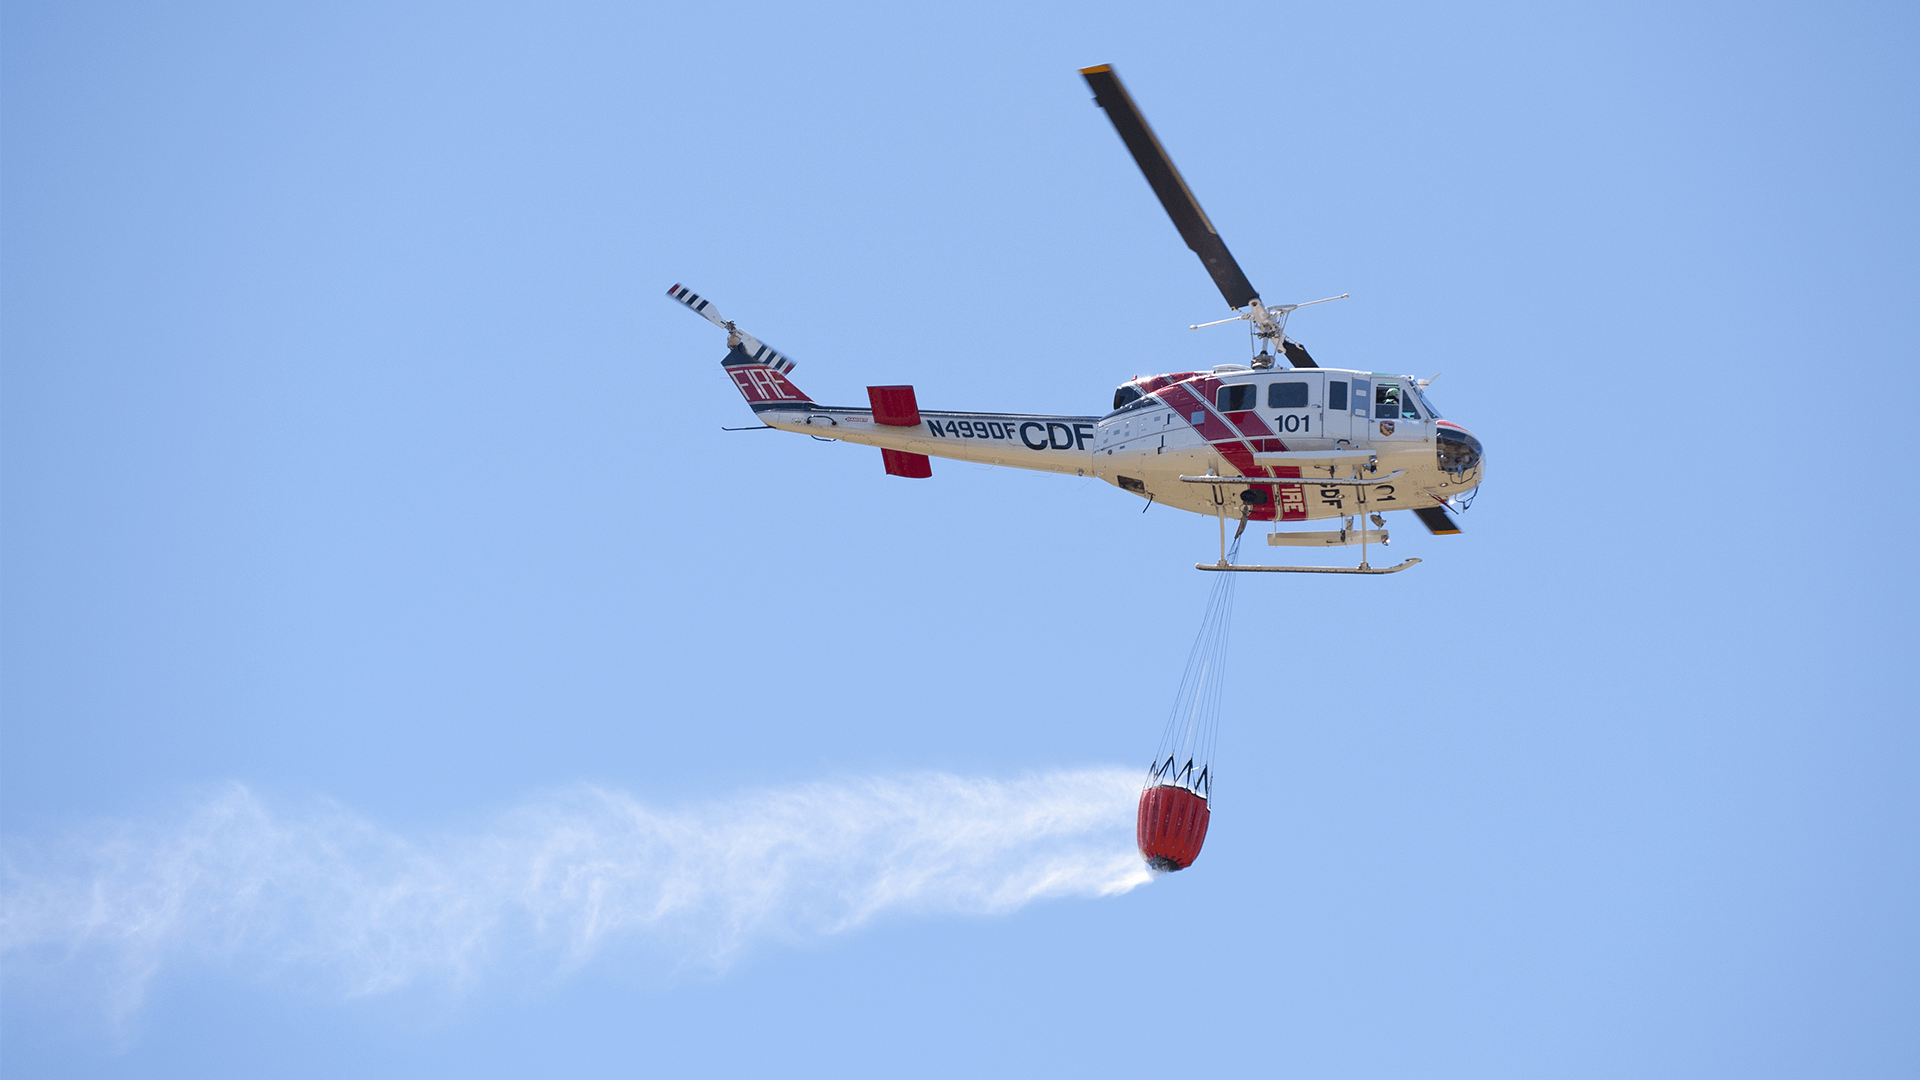 COVID-19 Leads to Downturn in Helicopter Accidents for First Half of 2020